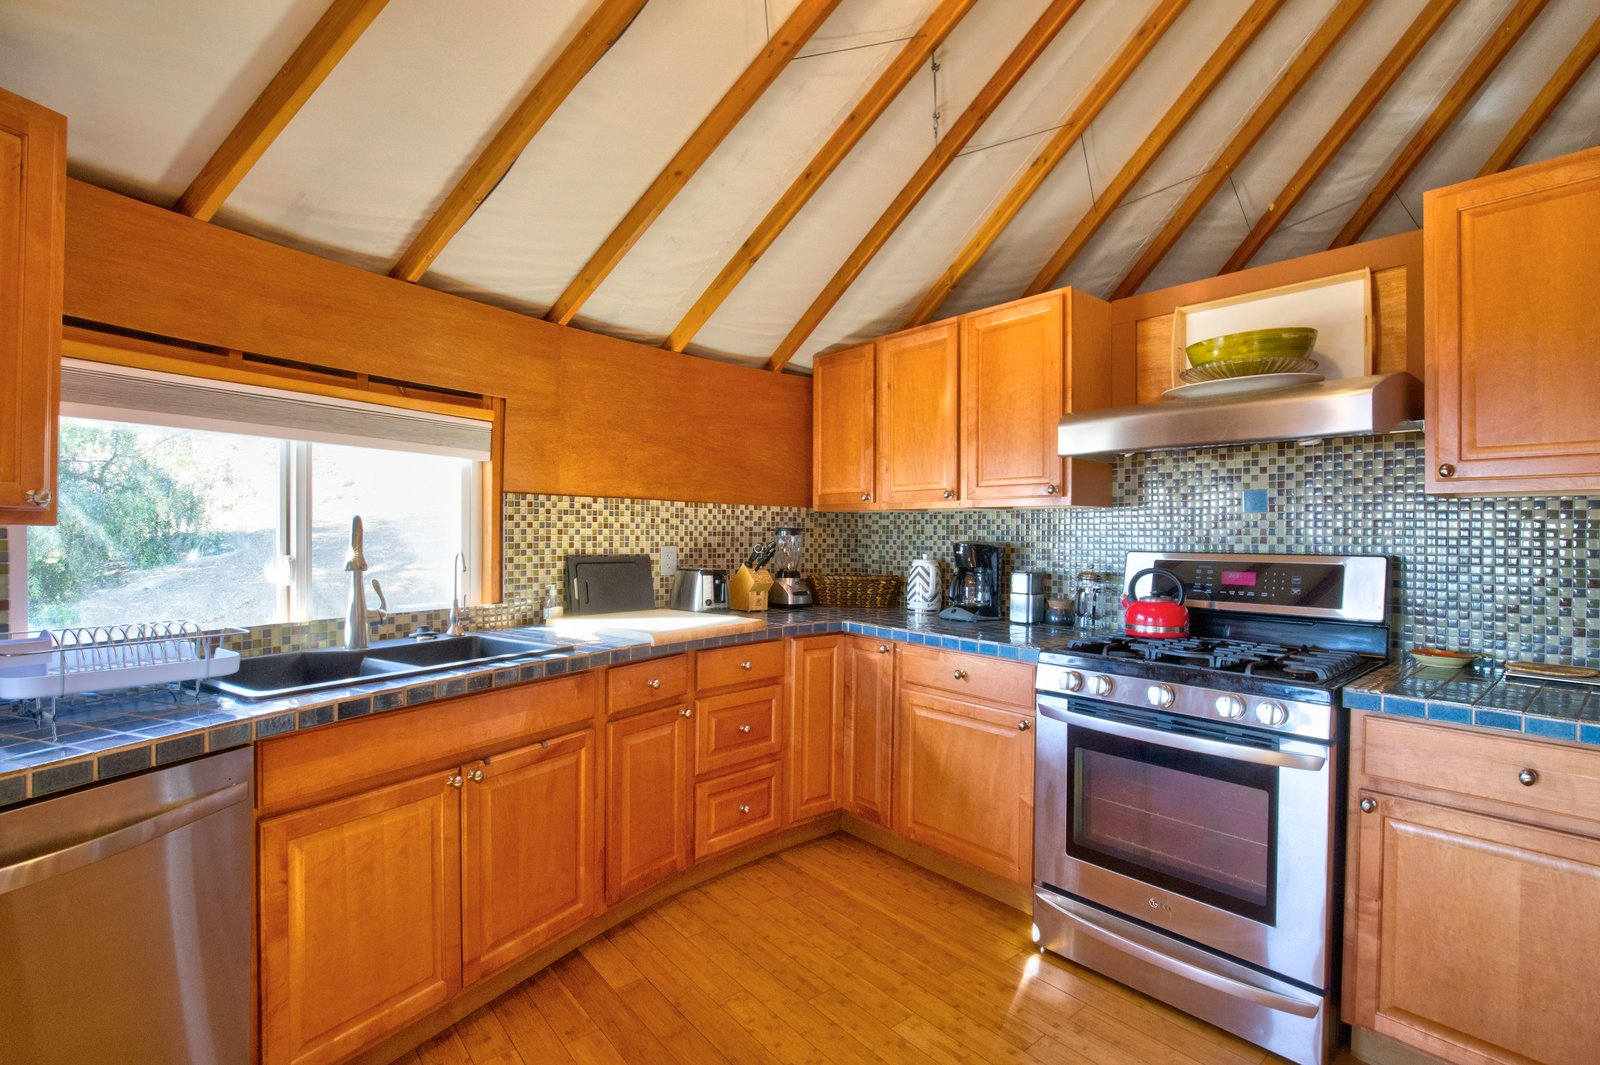 The roomy kitchen offers all the comforts of home.